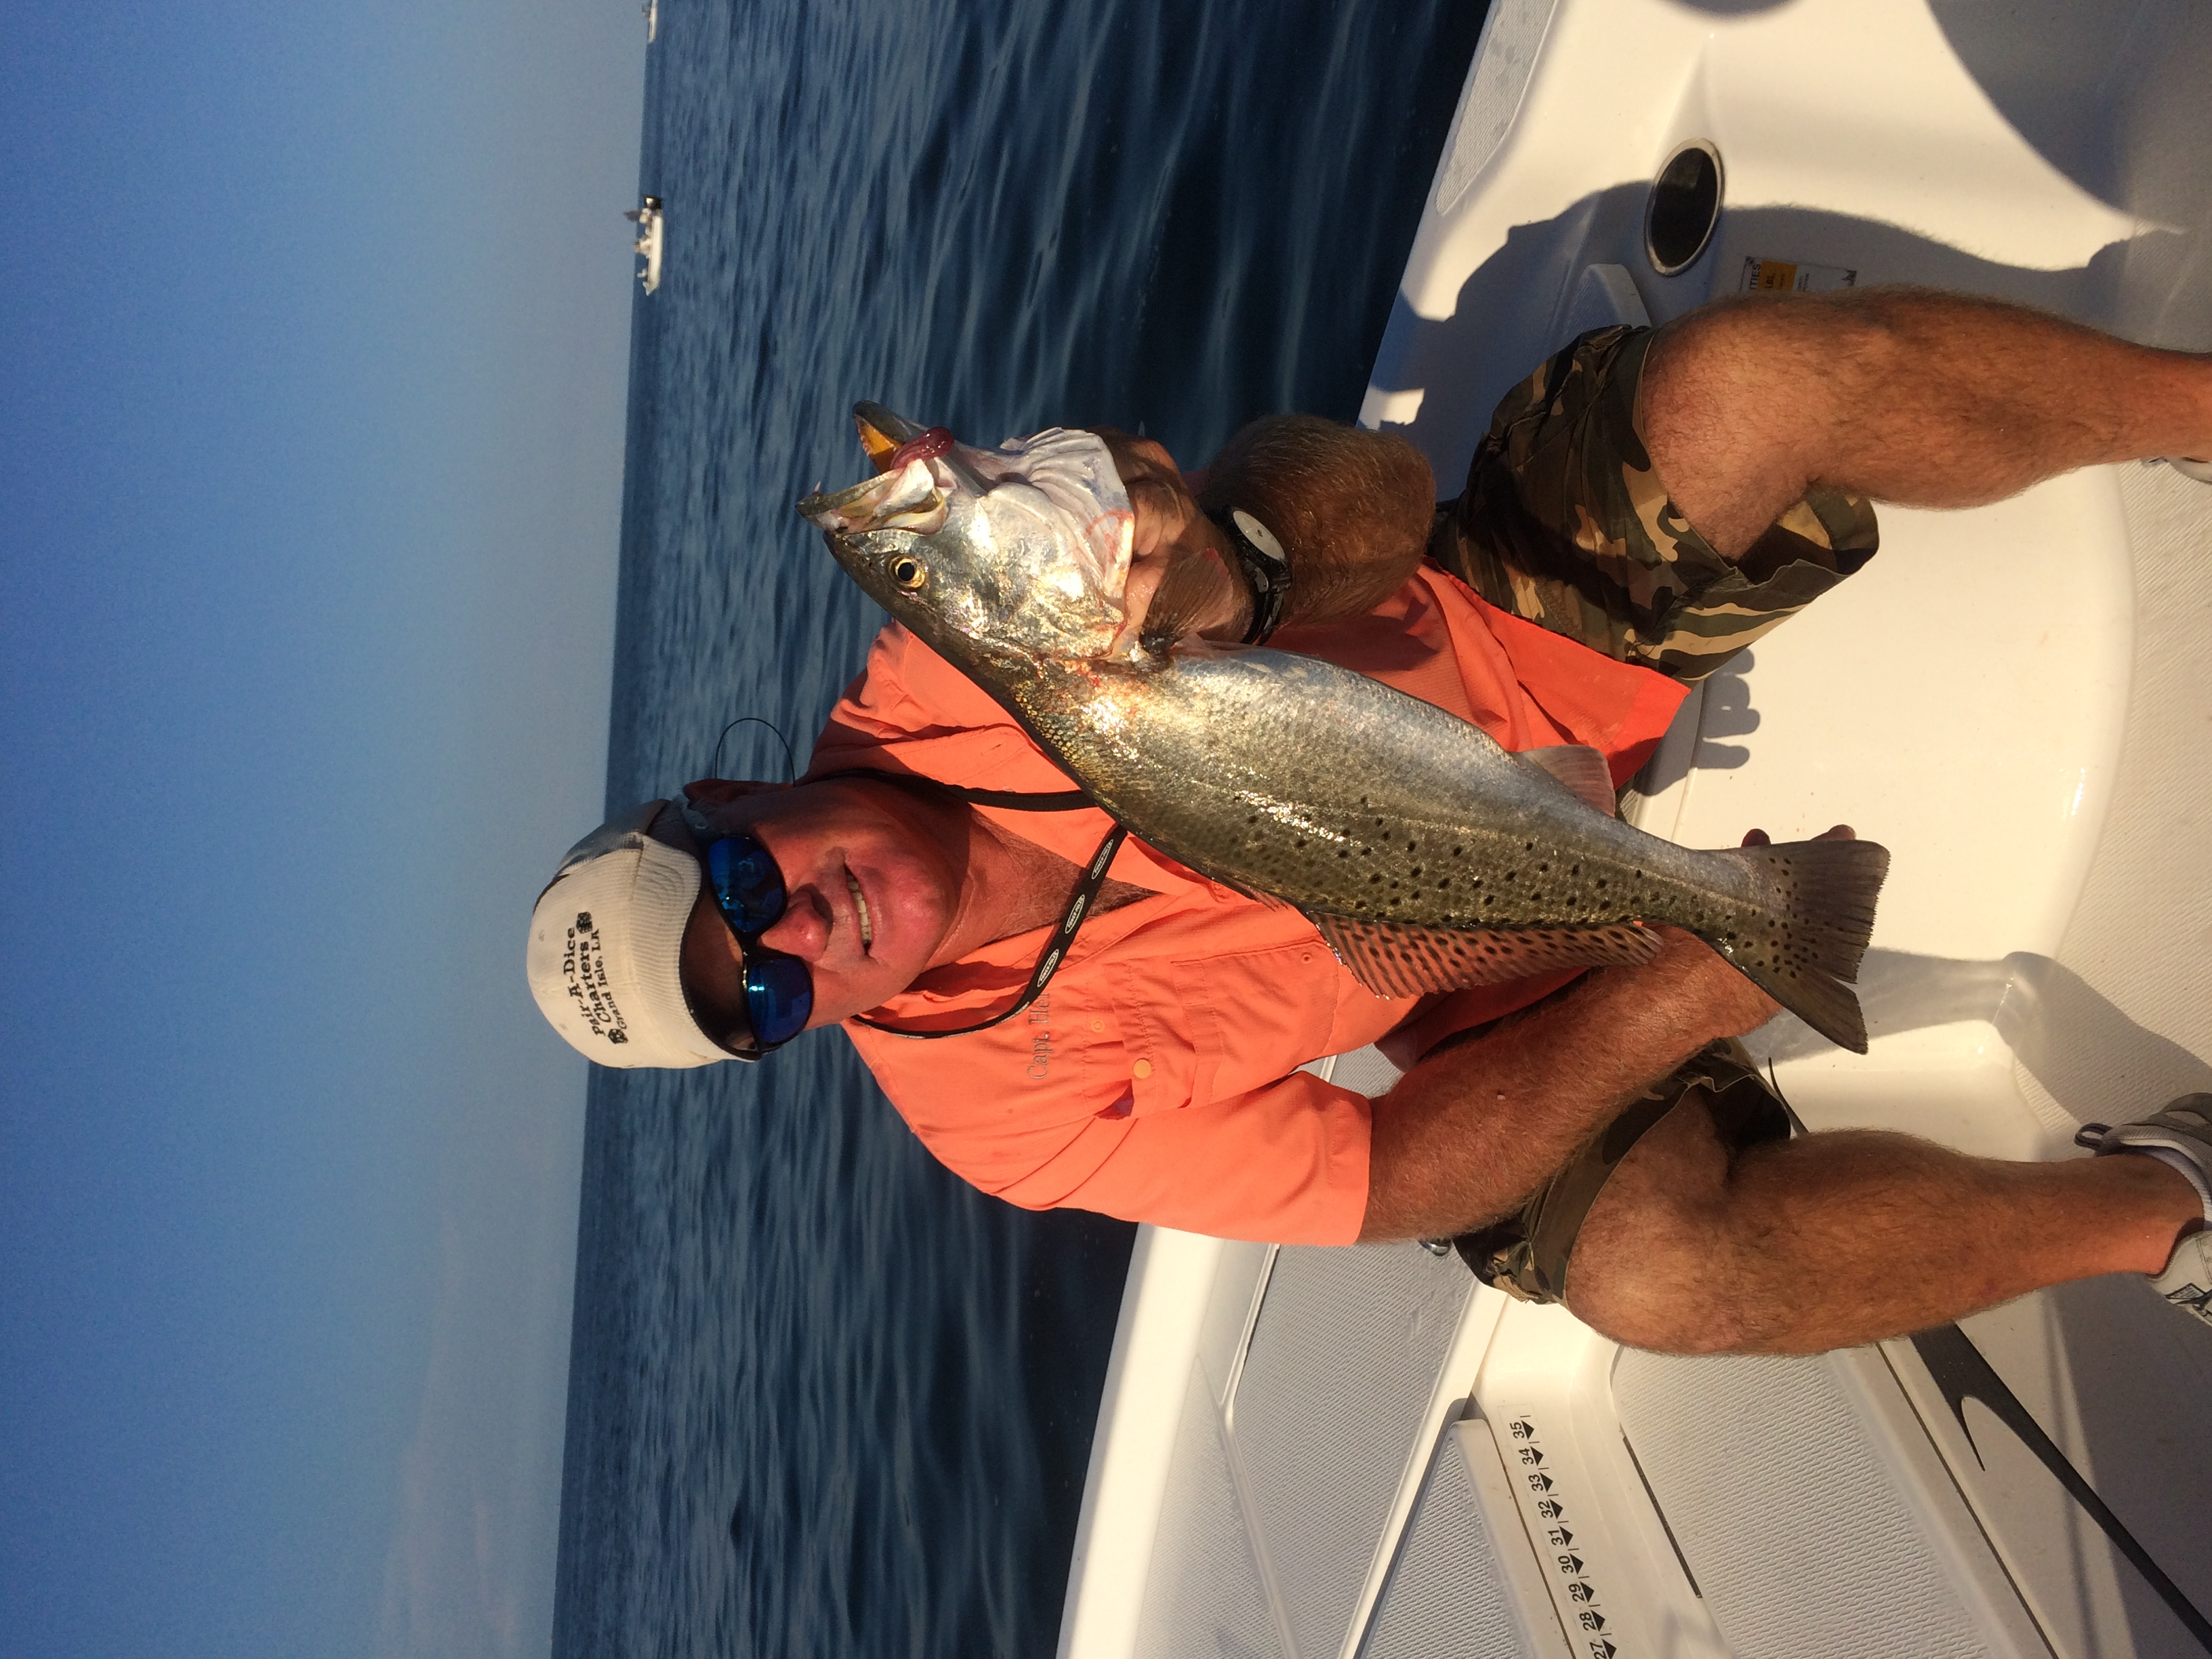 Pair a dice charter grand isle fishing for Fishing charters grand isle la